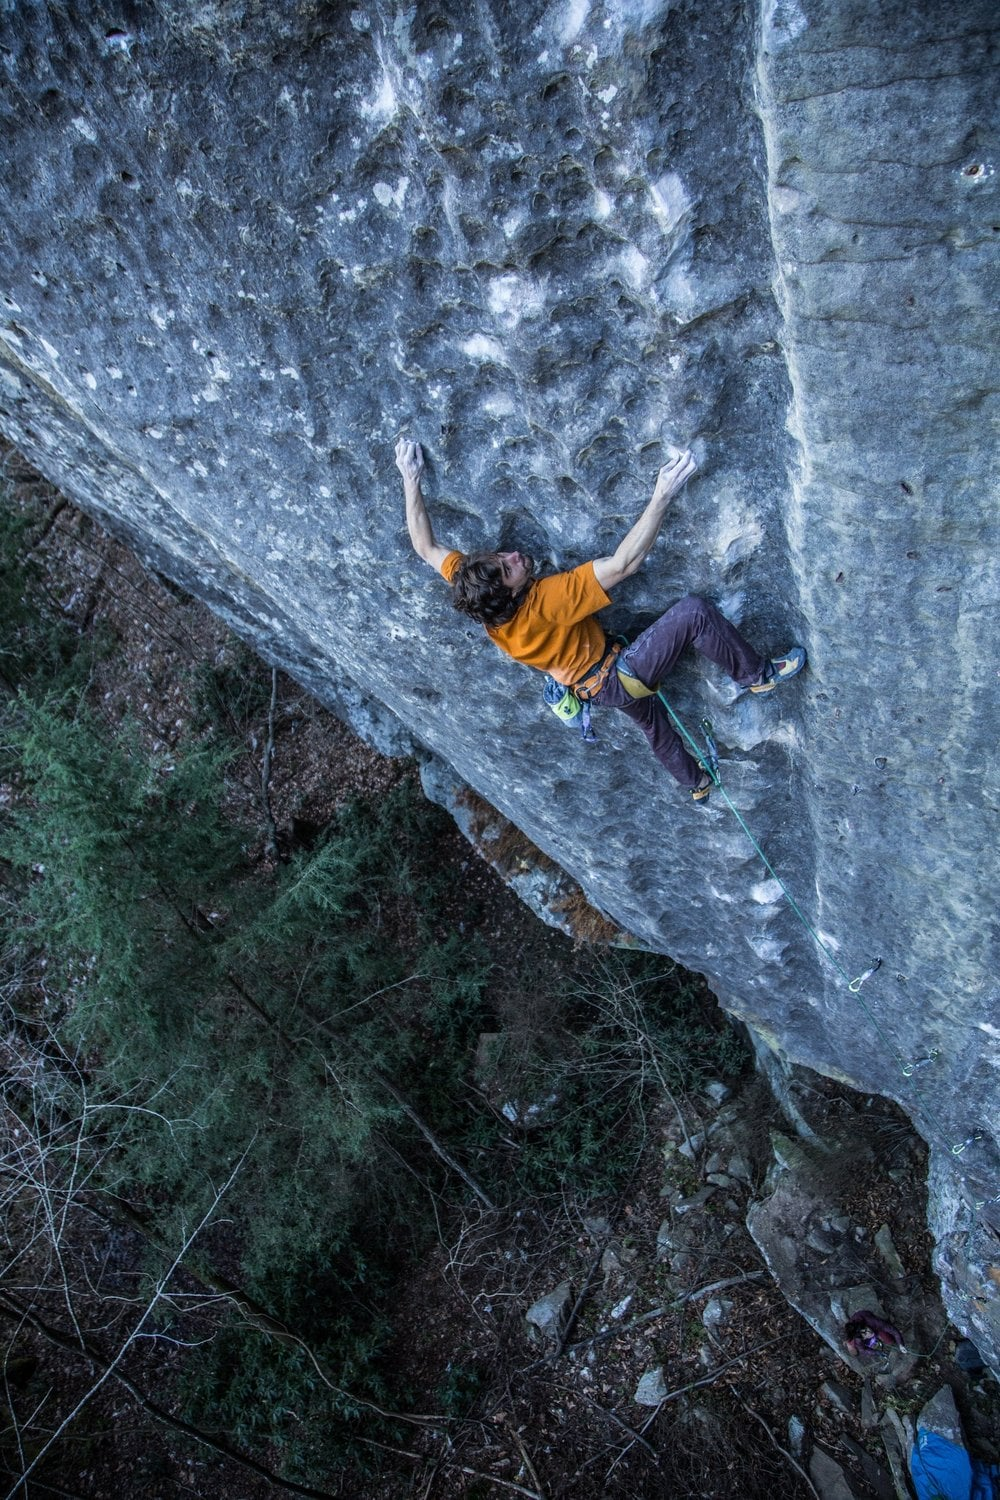 Joe Kinder: arrampicata, training e uso dei social media